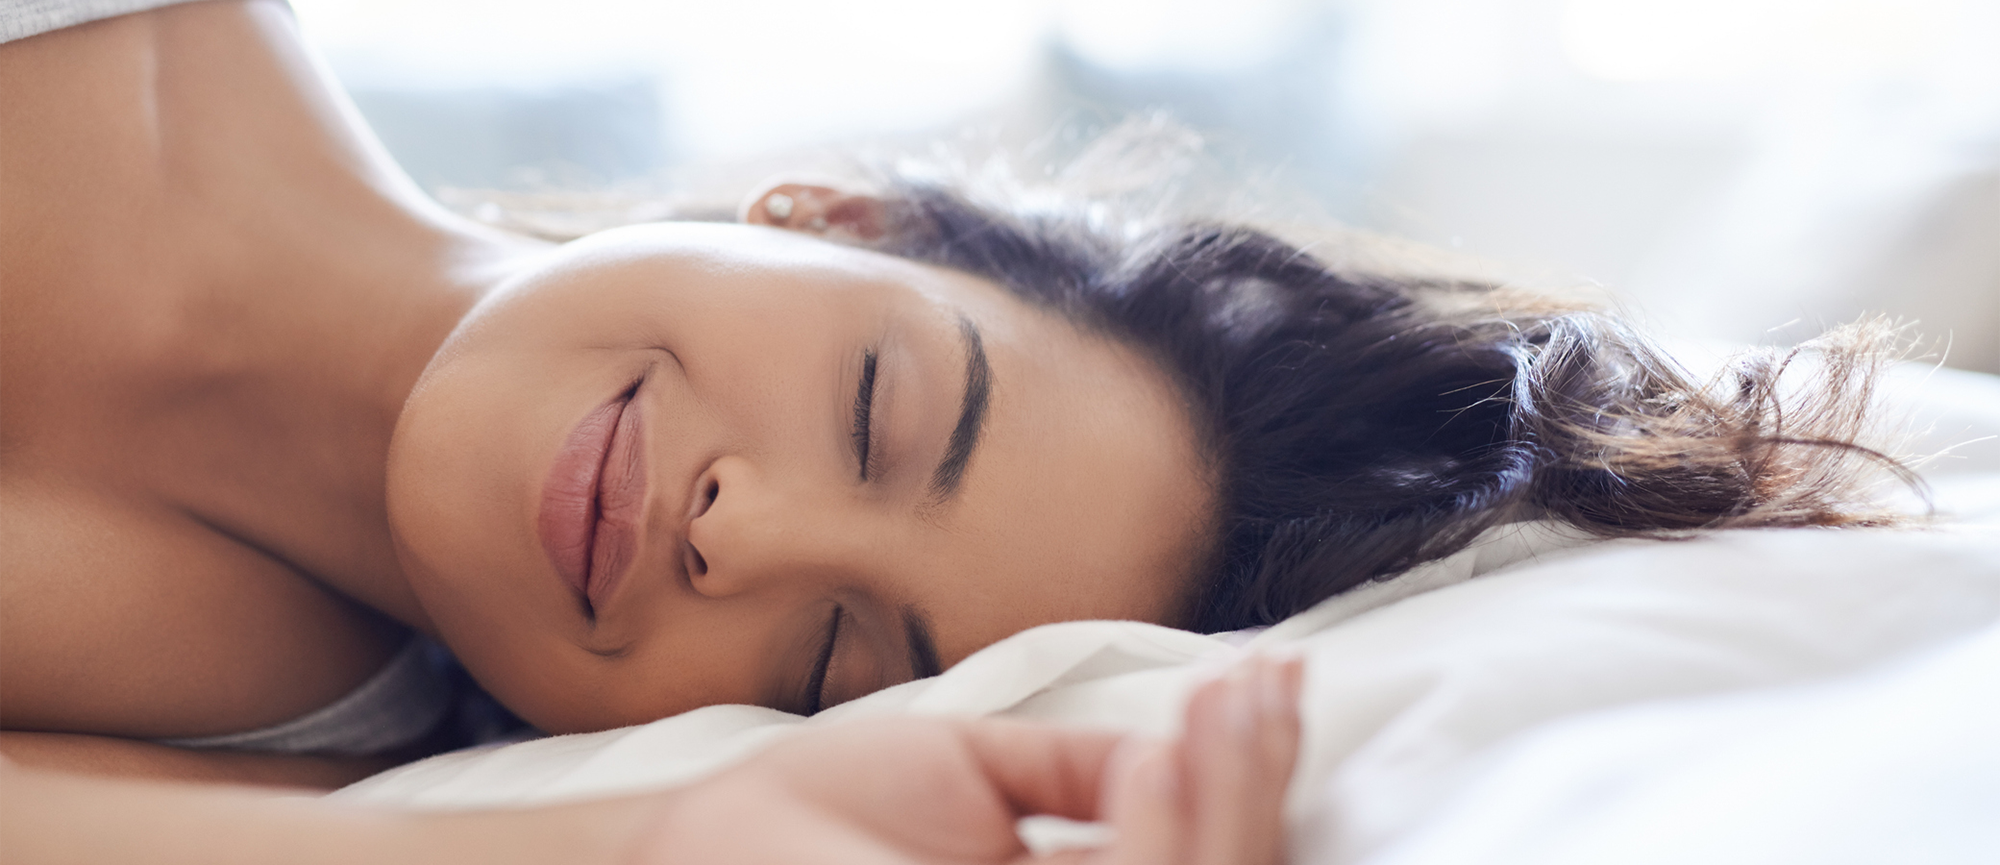 woman-enjoying-ultra-quiet-performance-while-sleeping